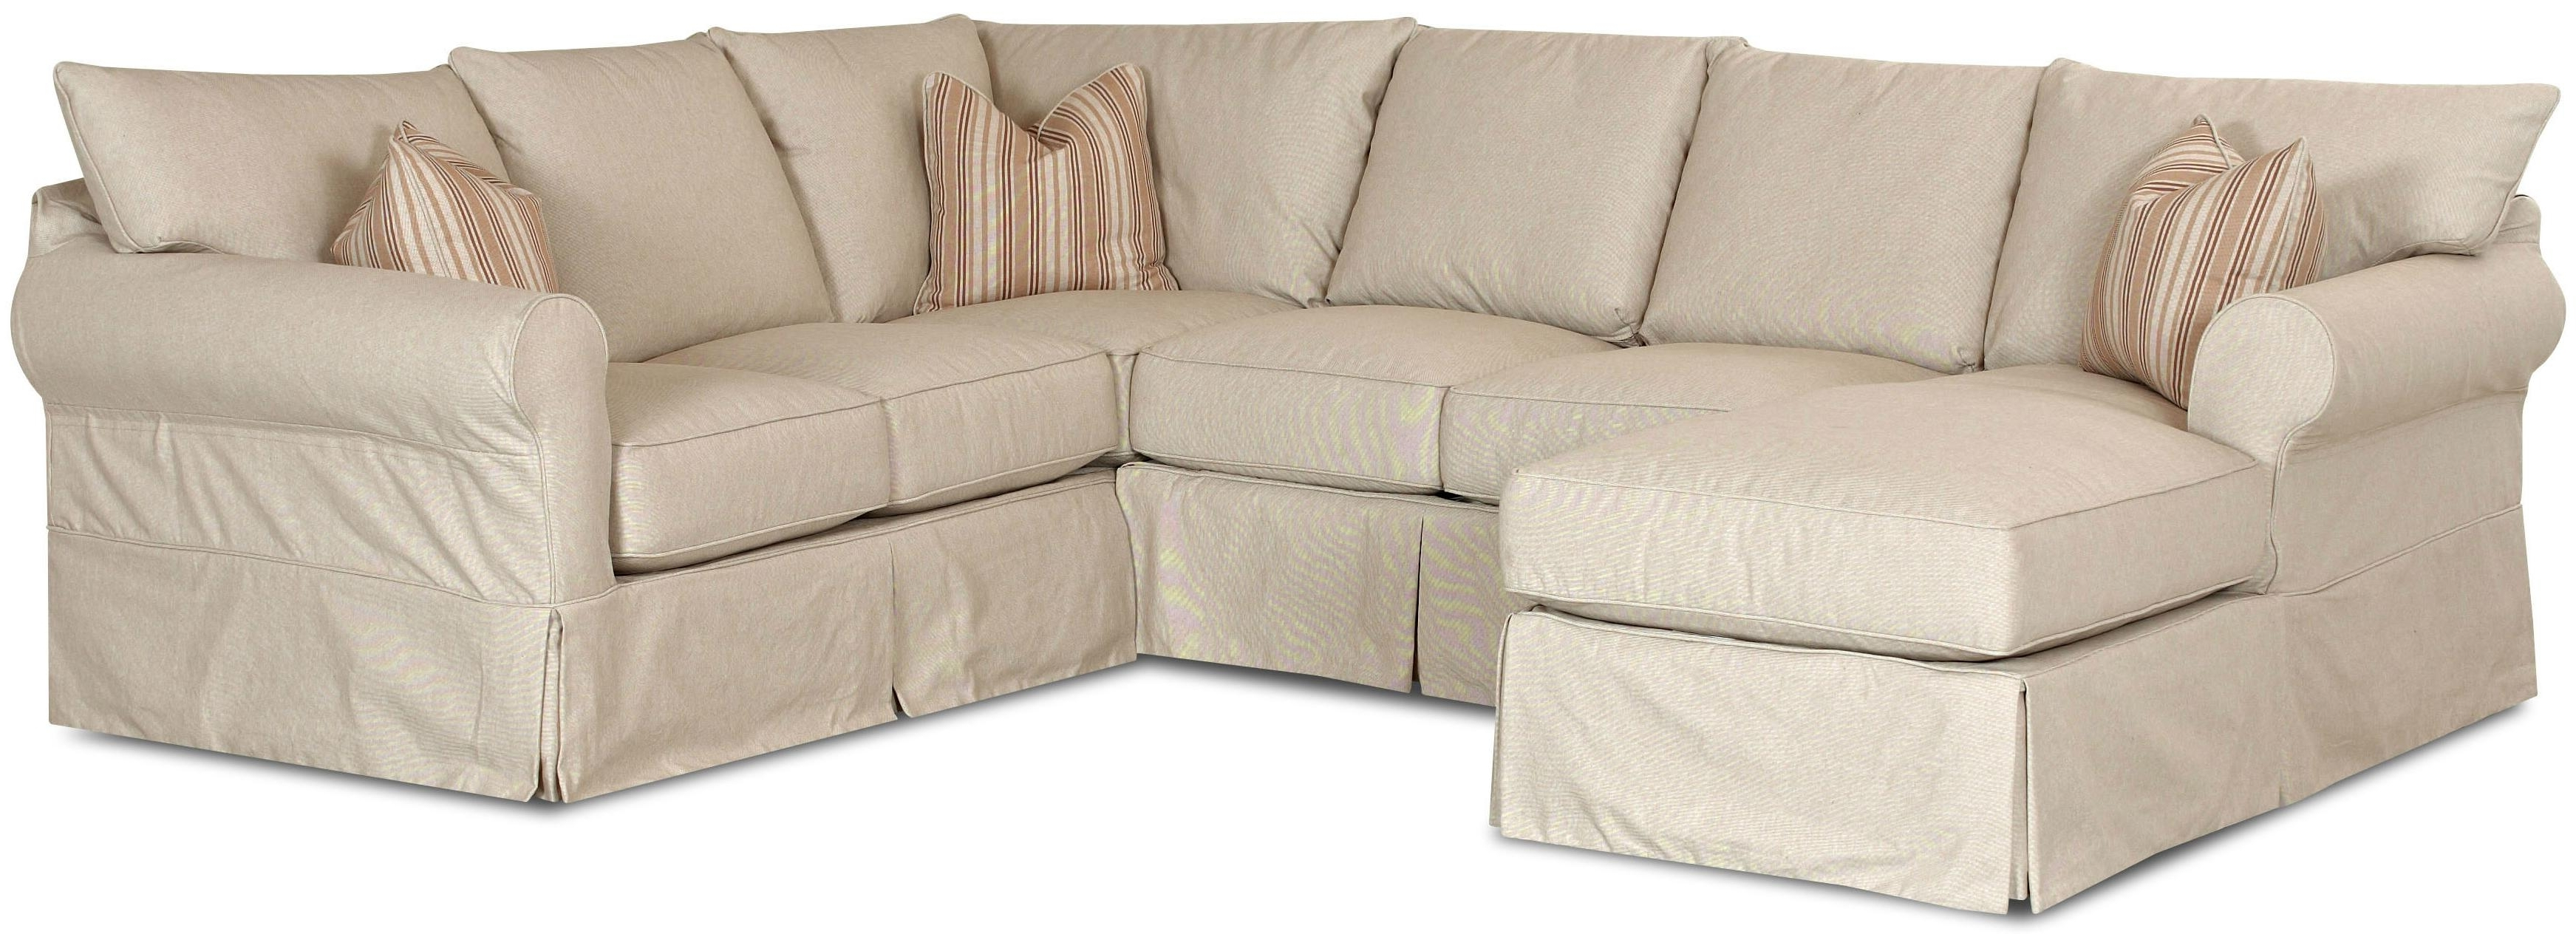 Sectional Sofa Slipcovers (View 7 of 15)